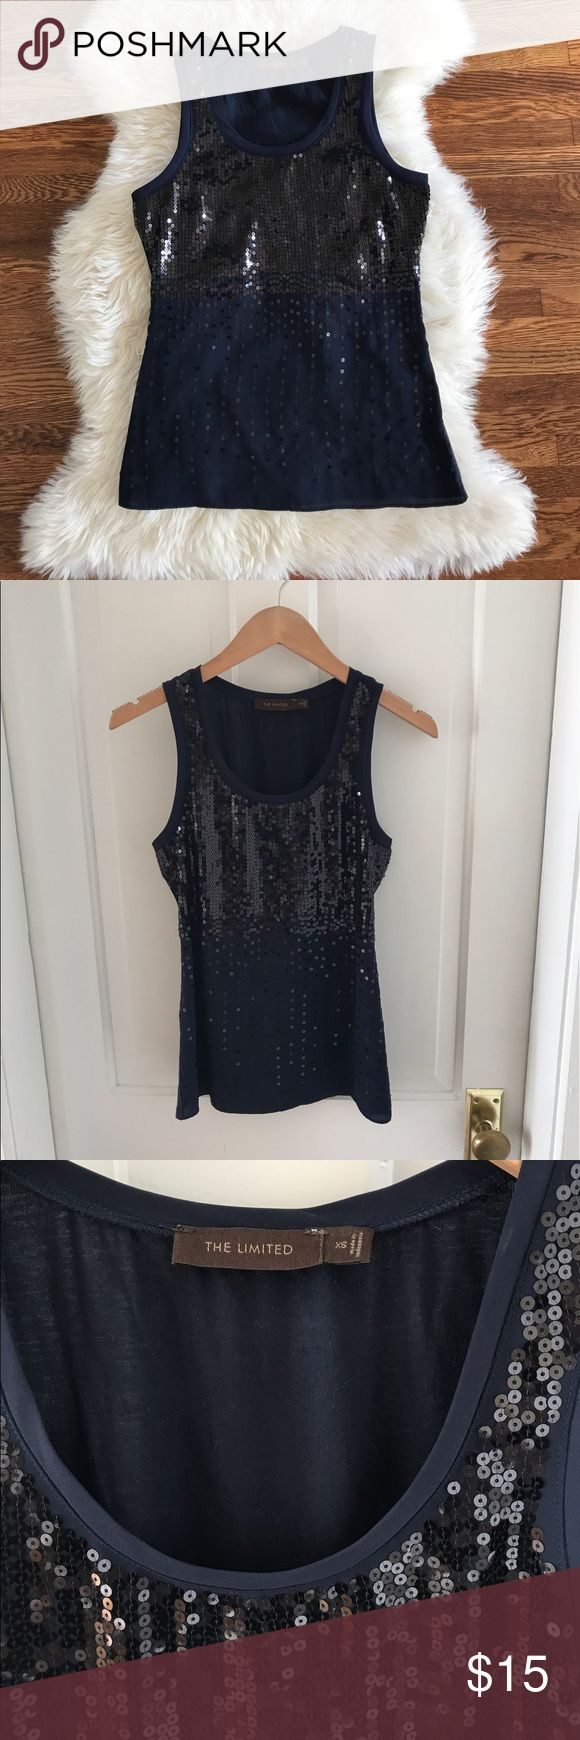 Navy sequin tank. Size XS Navy sequin tank from The Limited. The Limited Tops Tank Tops